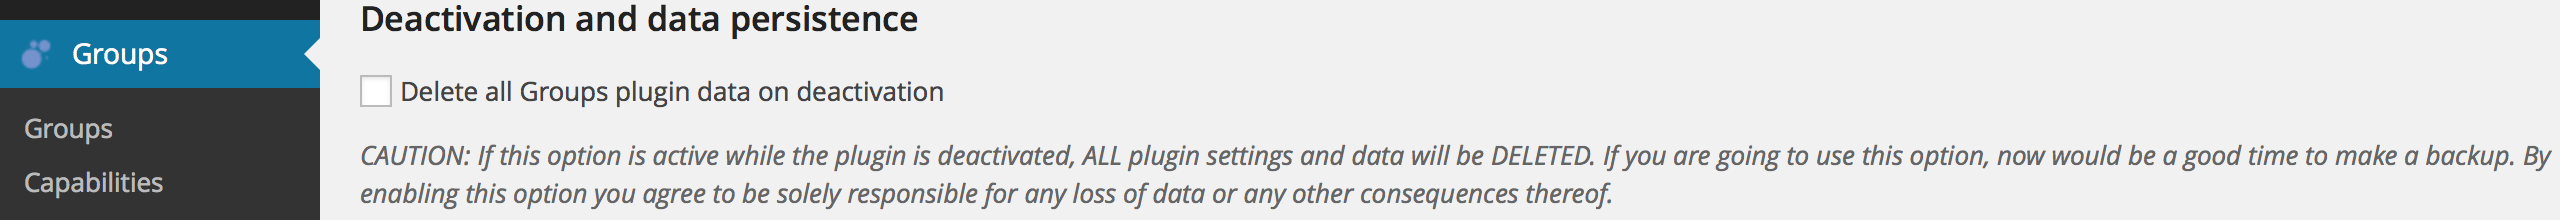 deactivation and data persistence